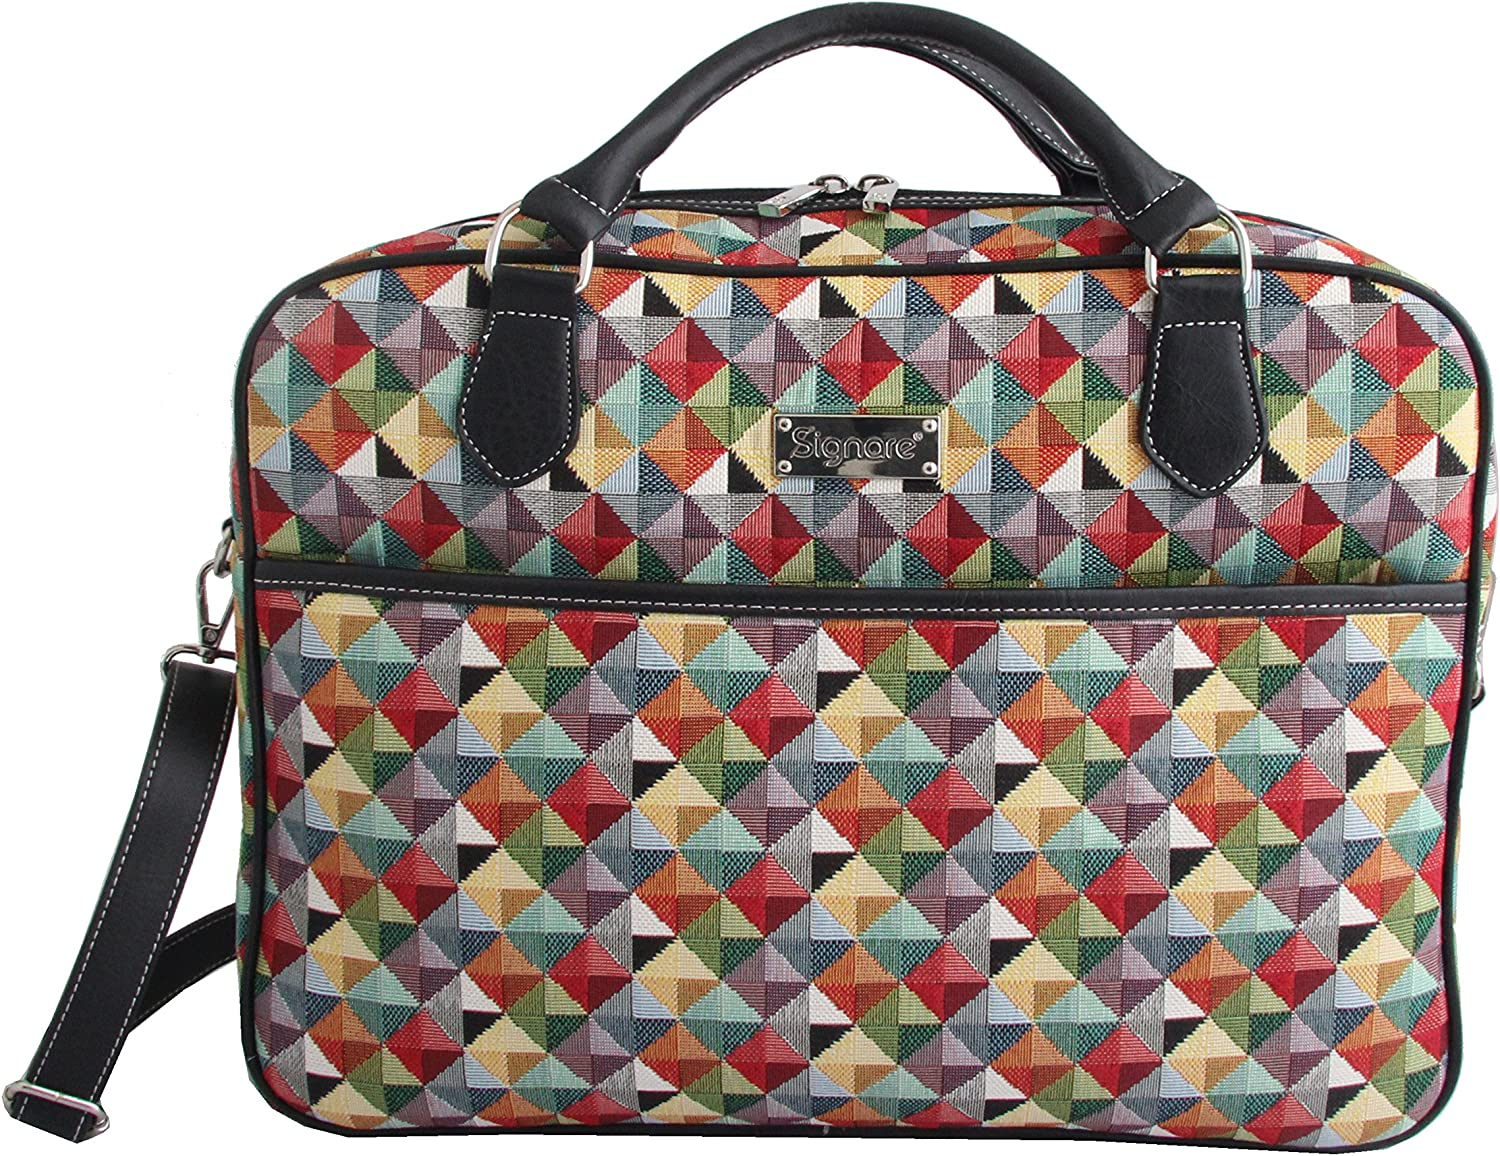 CSignare Large-scale sale Dallas Mall Tapestry Laptop bag briefca 15.6 computer messenger